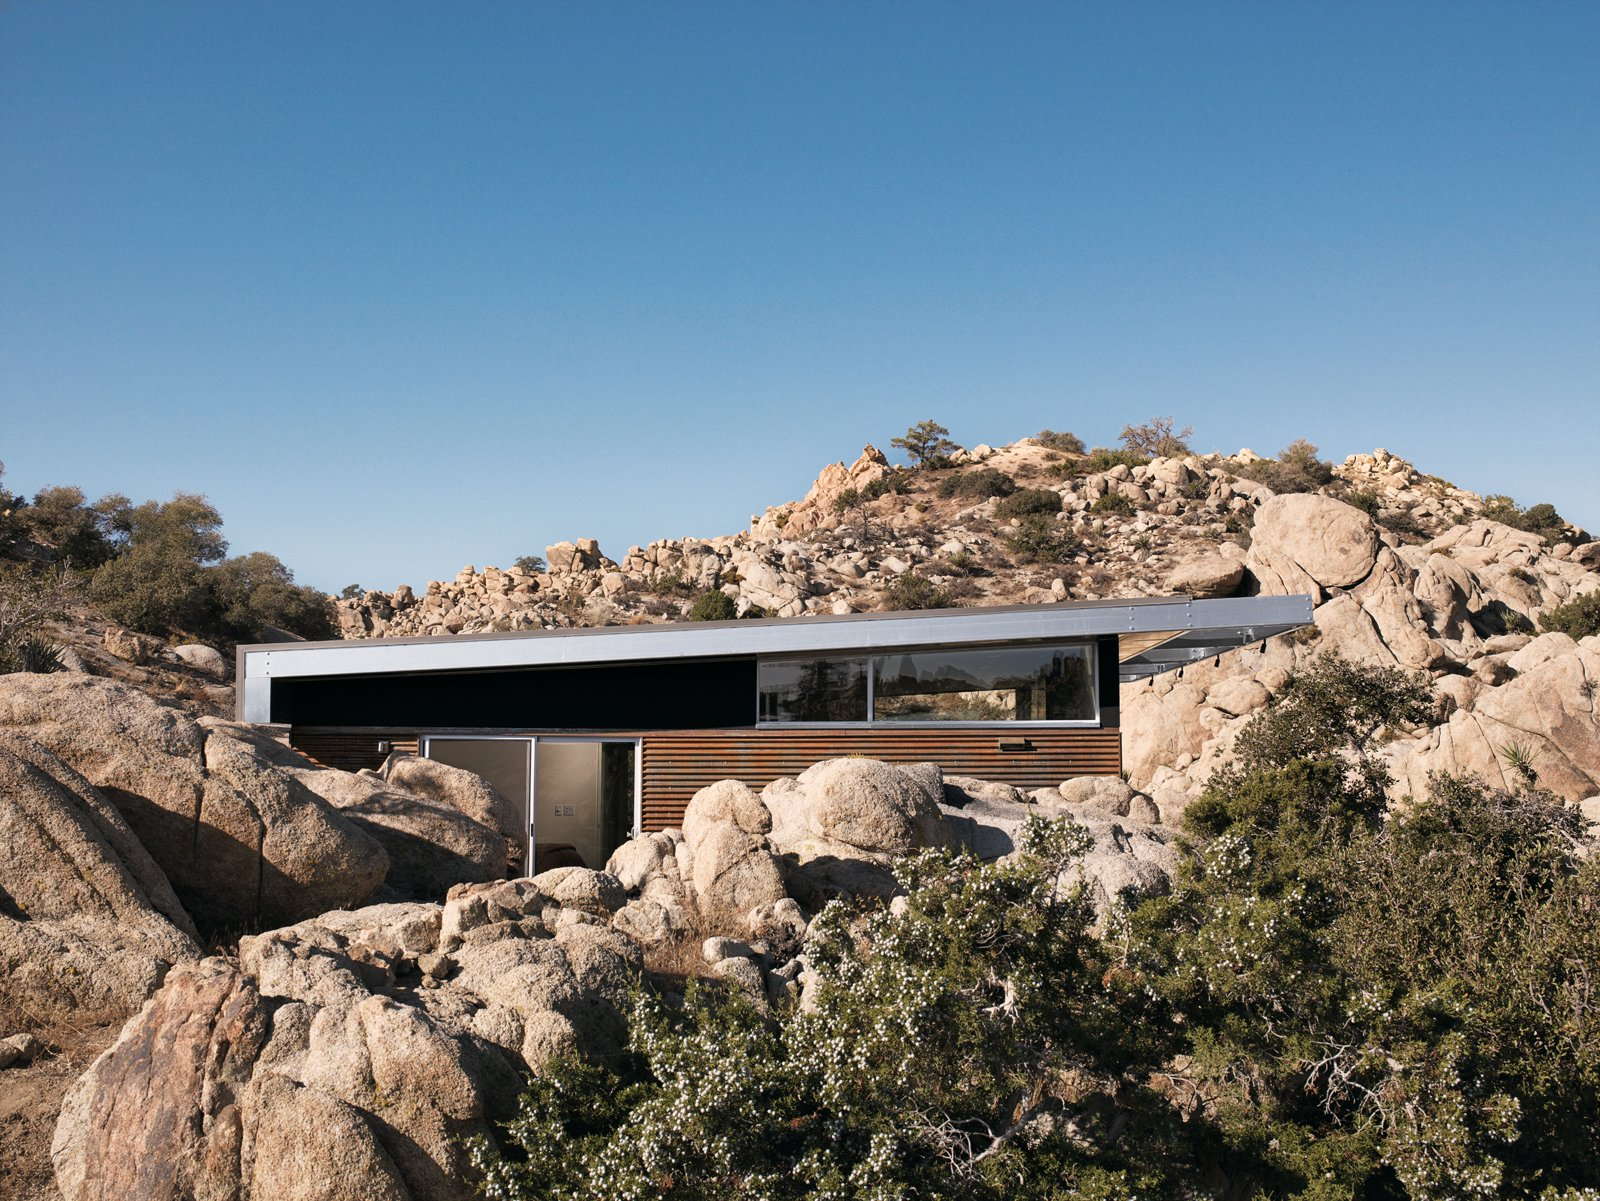 The Best-Shaped House For Every Climate in the U.S. and Tips For Optimizing Sustainability